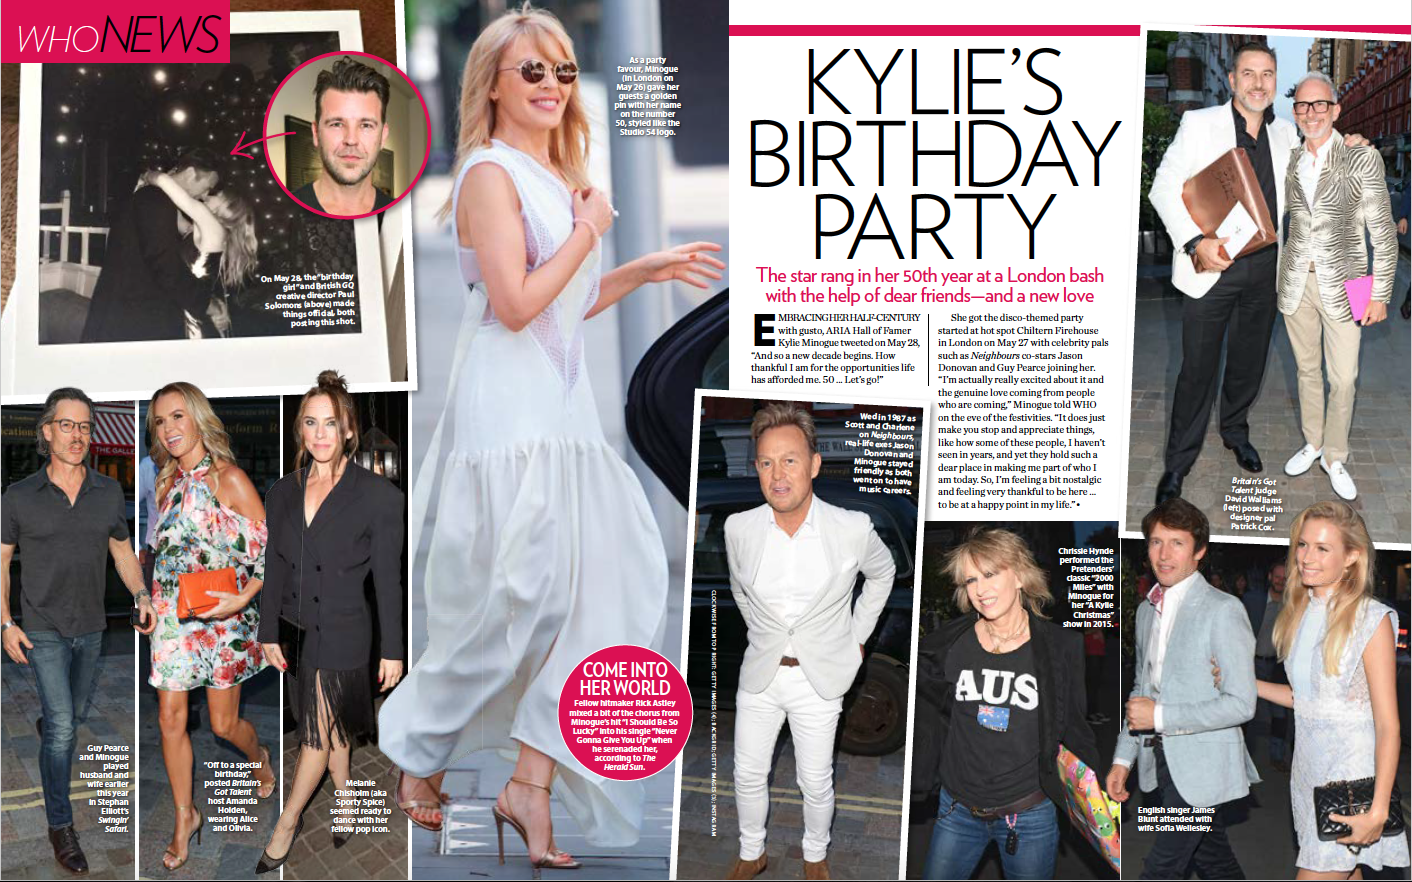 KylieBirthday_11Jun18.png